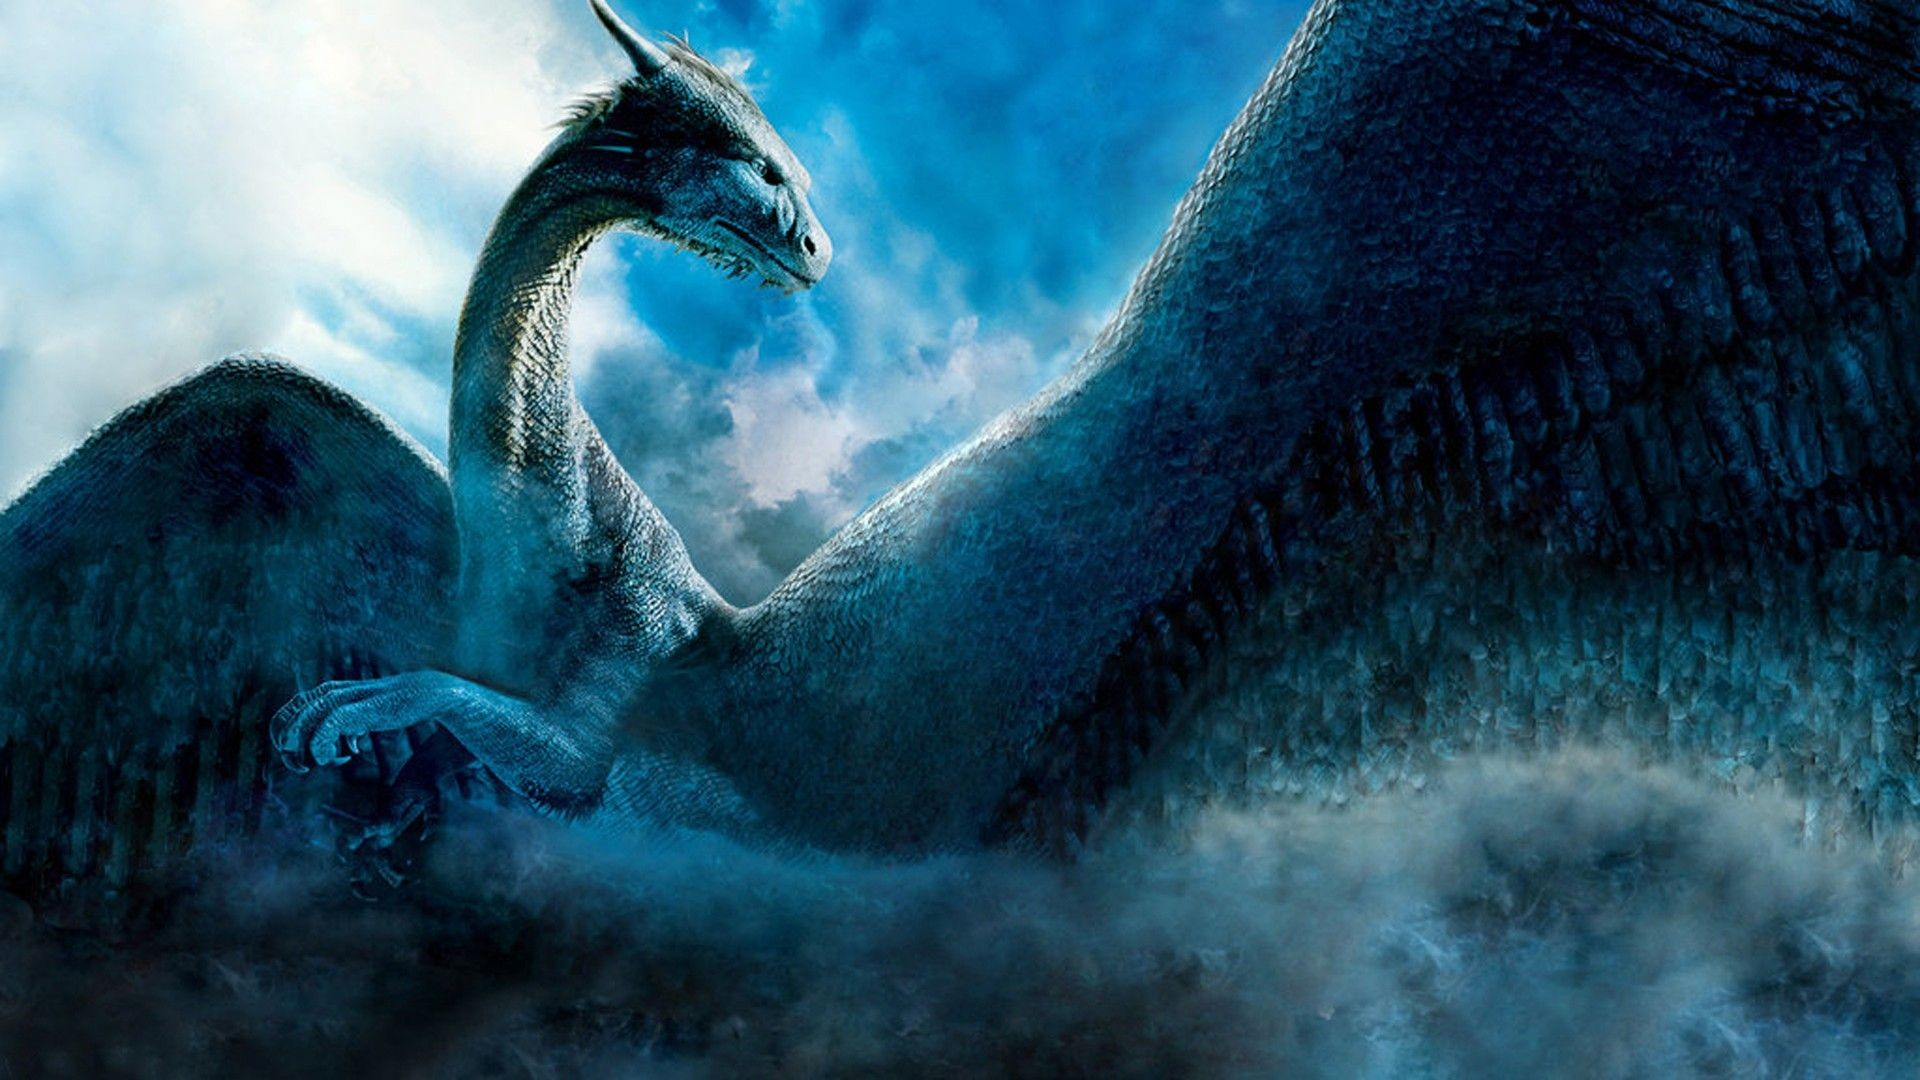 Samsung Hd Wallpapers 1080p: Dragon Wallpaper HD 1080p ·① Download Free Amazing